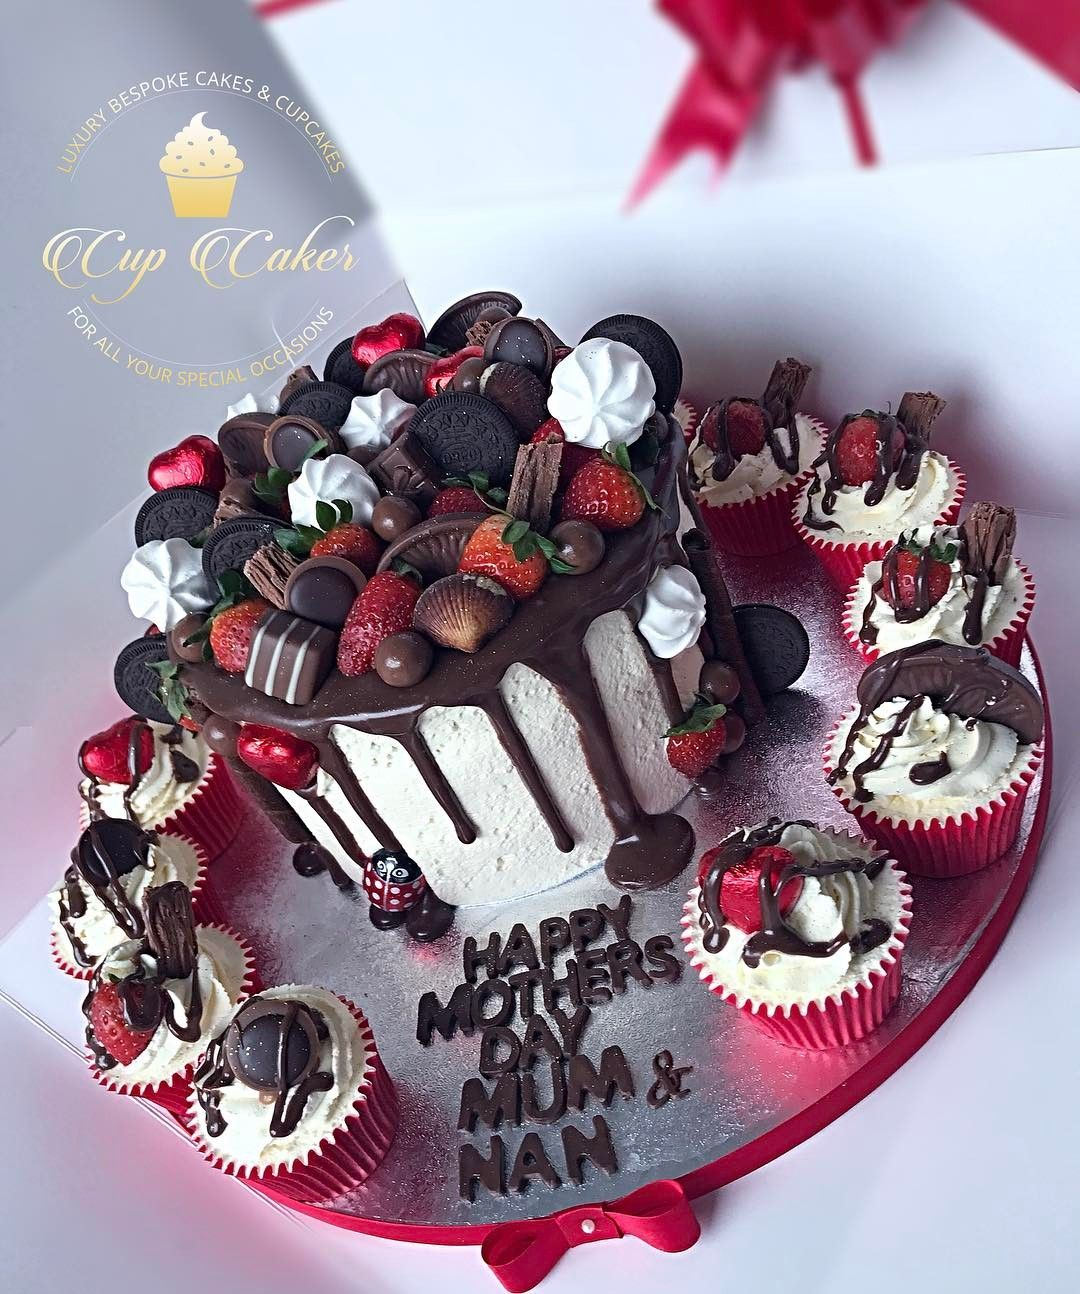 Mother S Day Should Be Every Day Freshcream Cake Cupcakes Stawberries Chocolate Partyinstyle Halal Bradford Leeds Keighly Fresh Cream Cake Food